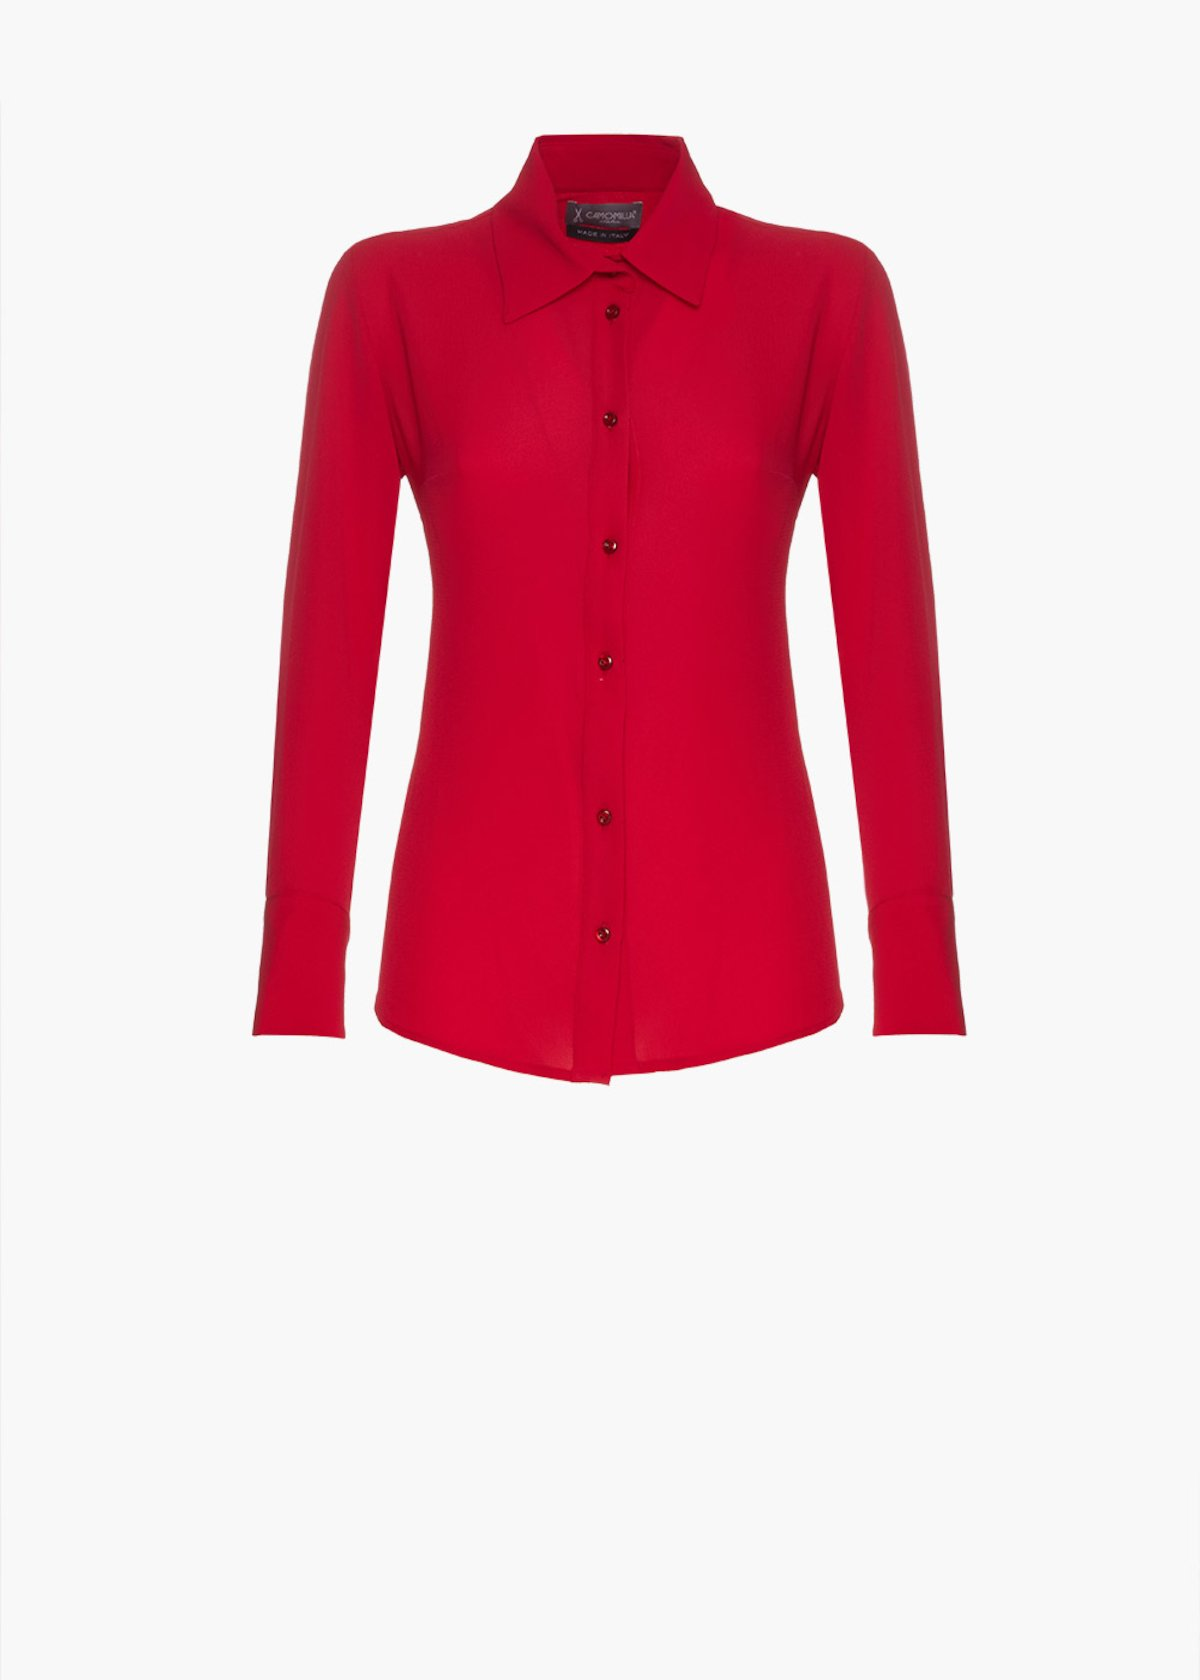 Camicia Cadeau con colletto - Peonia - Donna - Immagine categoria